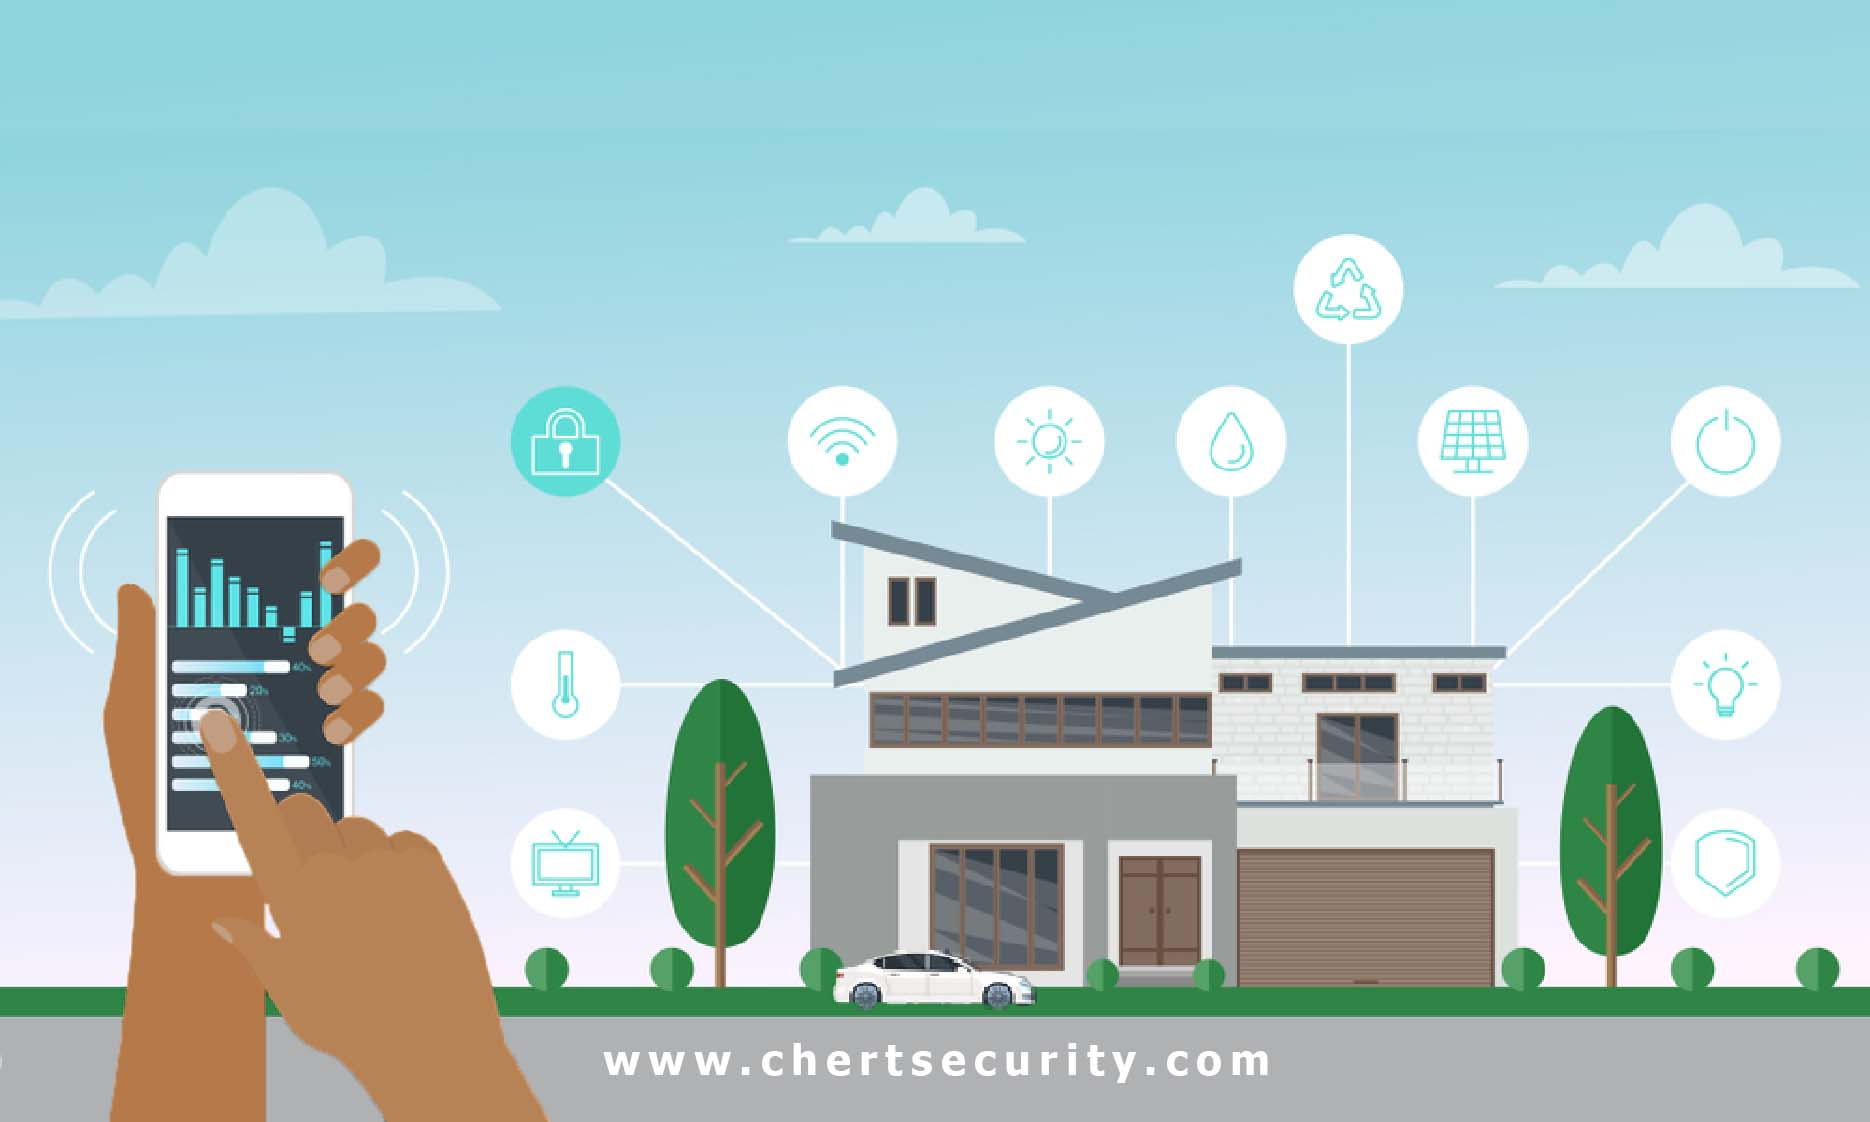 VULNERABILITIES ASSOCIATED WITH SMART HOMES